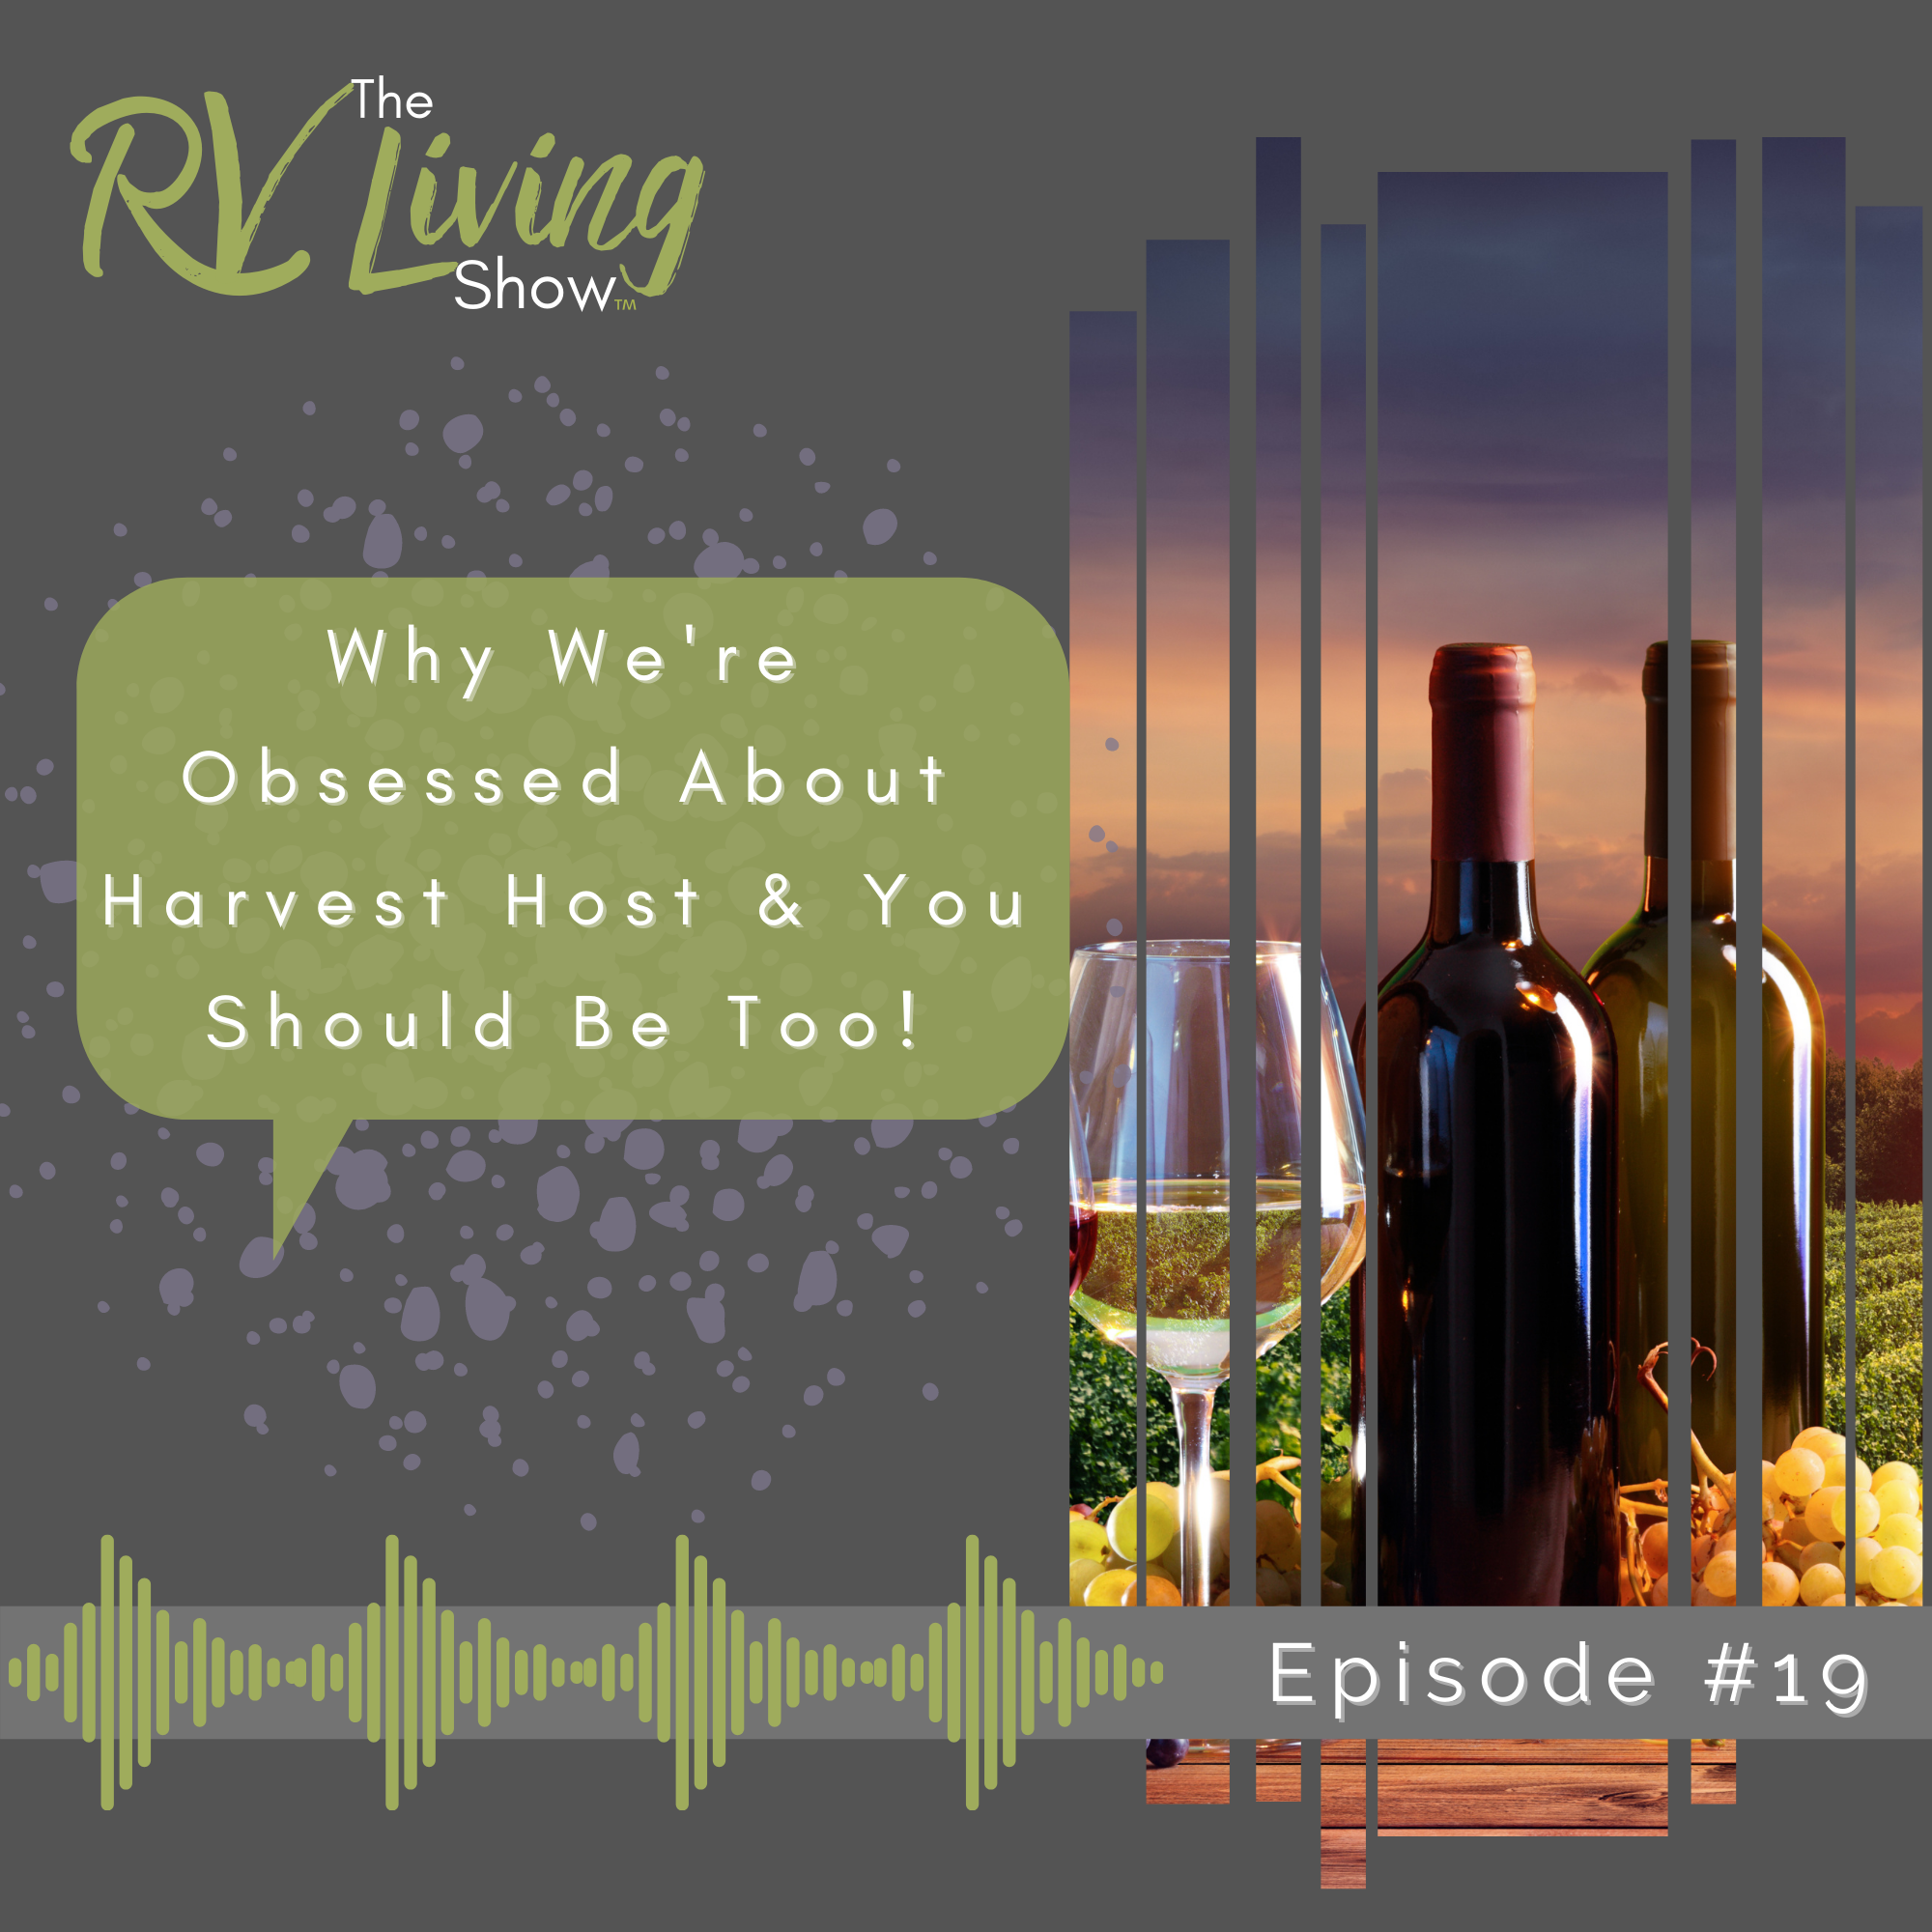 Why We're Obsessed About Harvest Host & You Should Be Too!